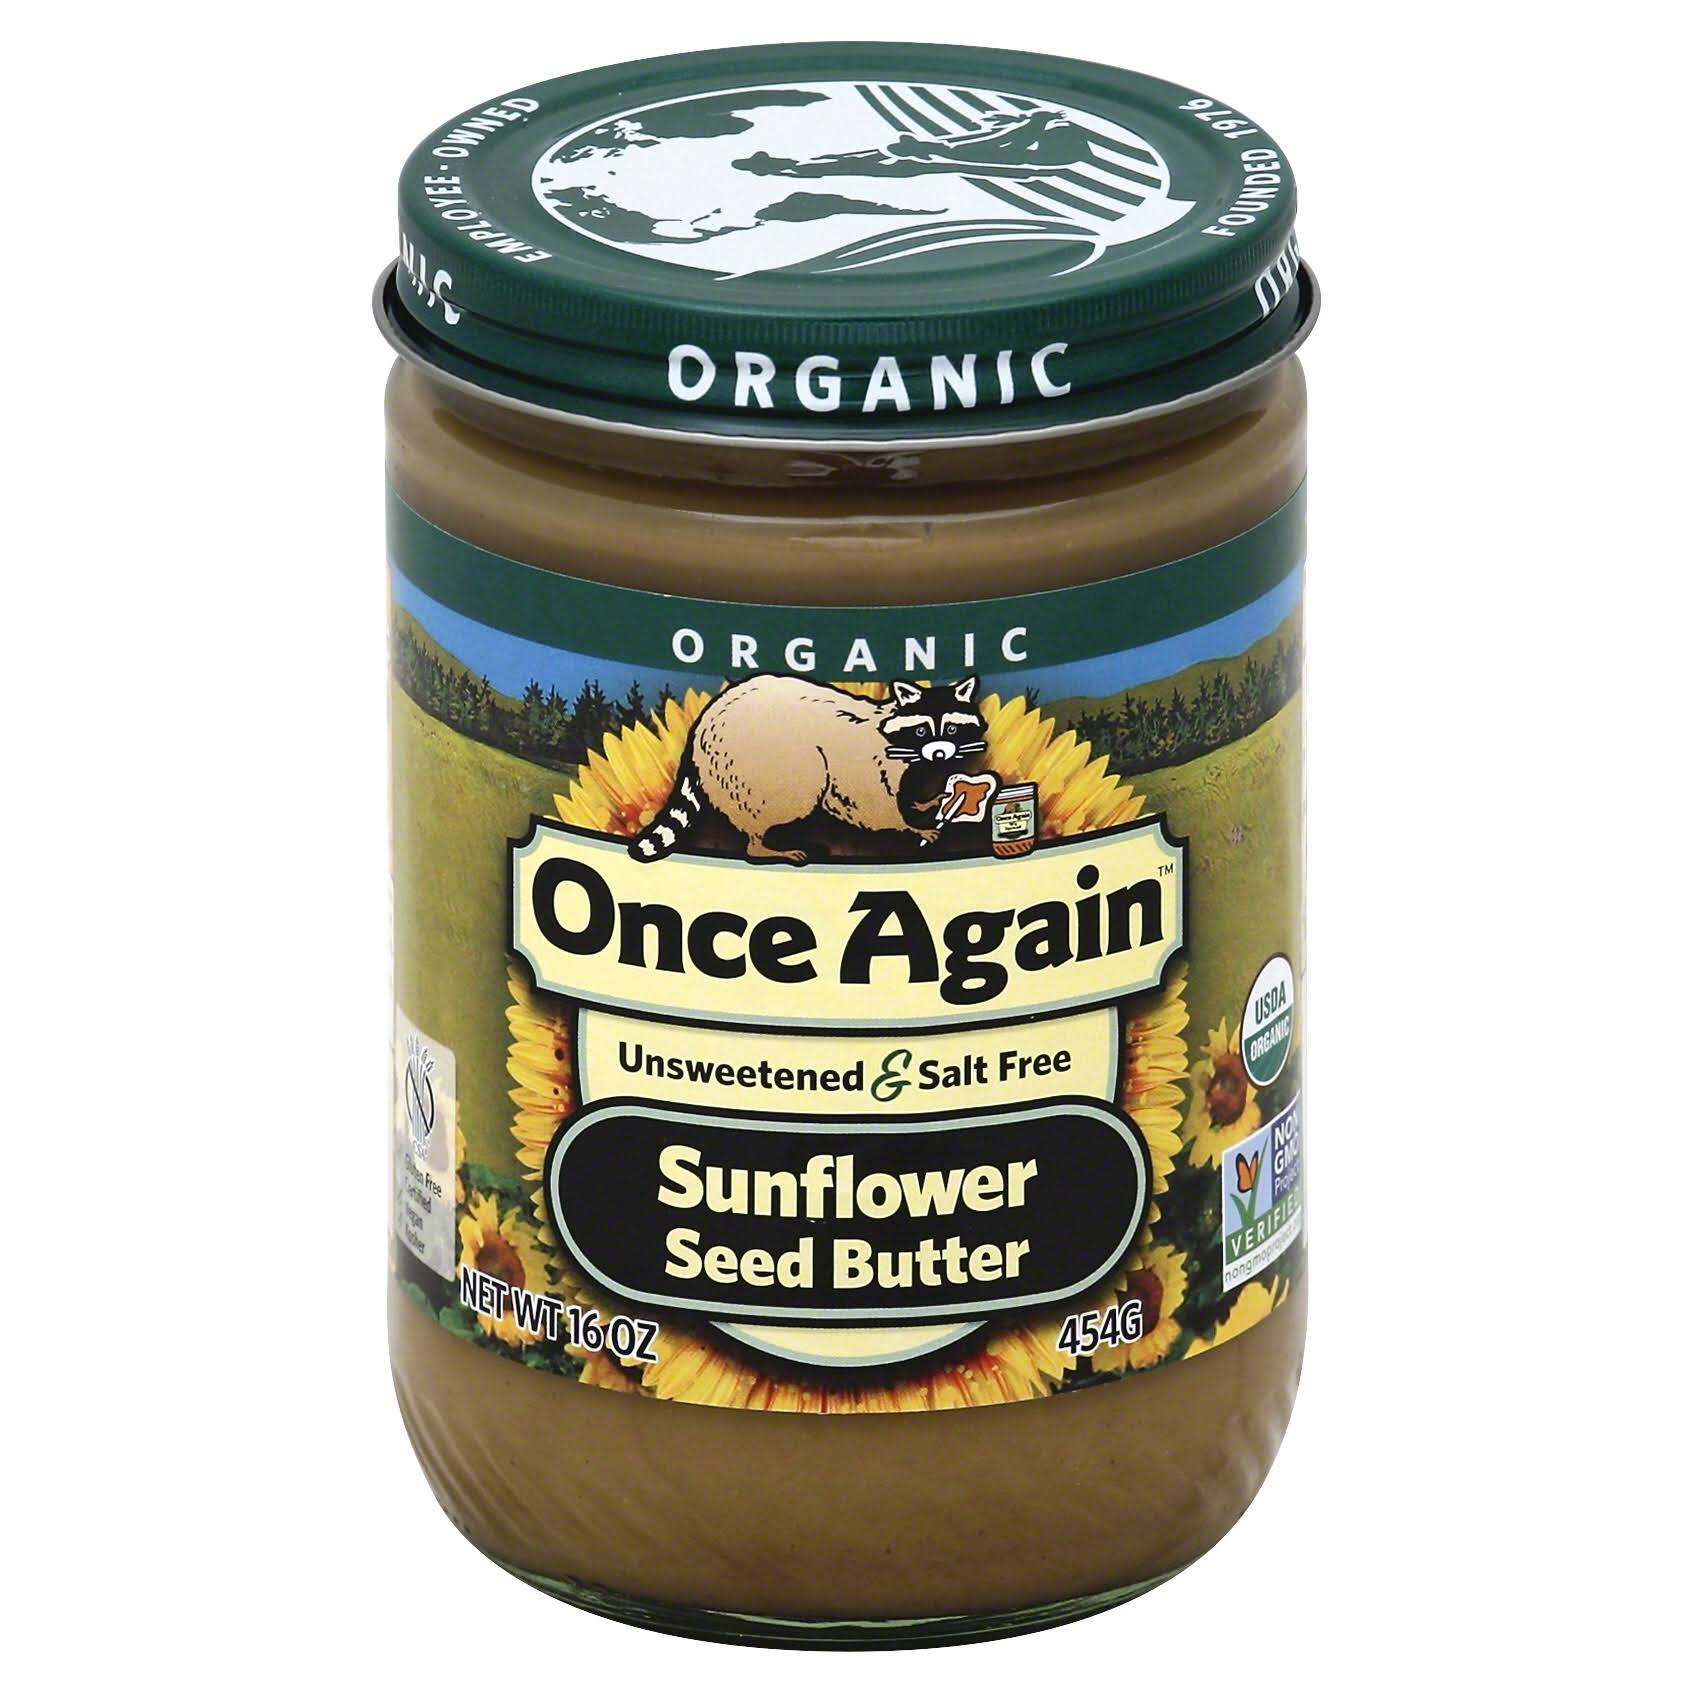 Once Again Organic Sunflower Seed Butter - 454g